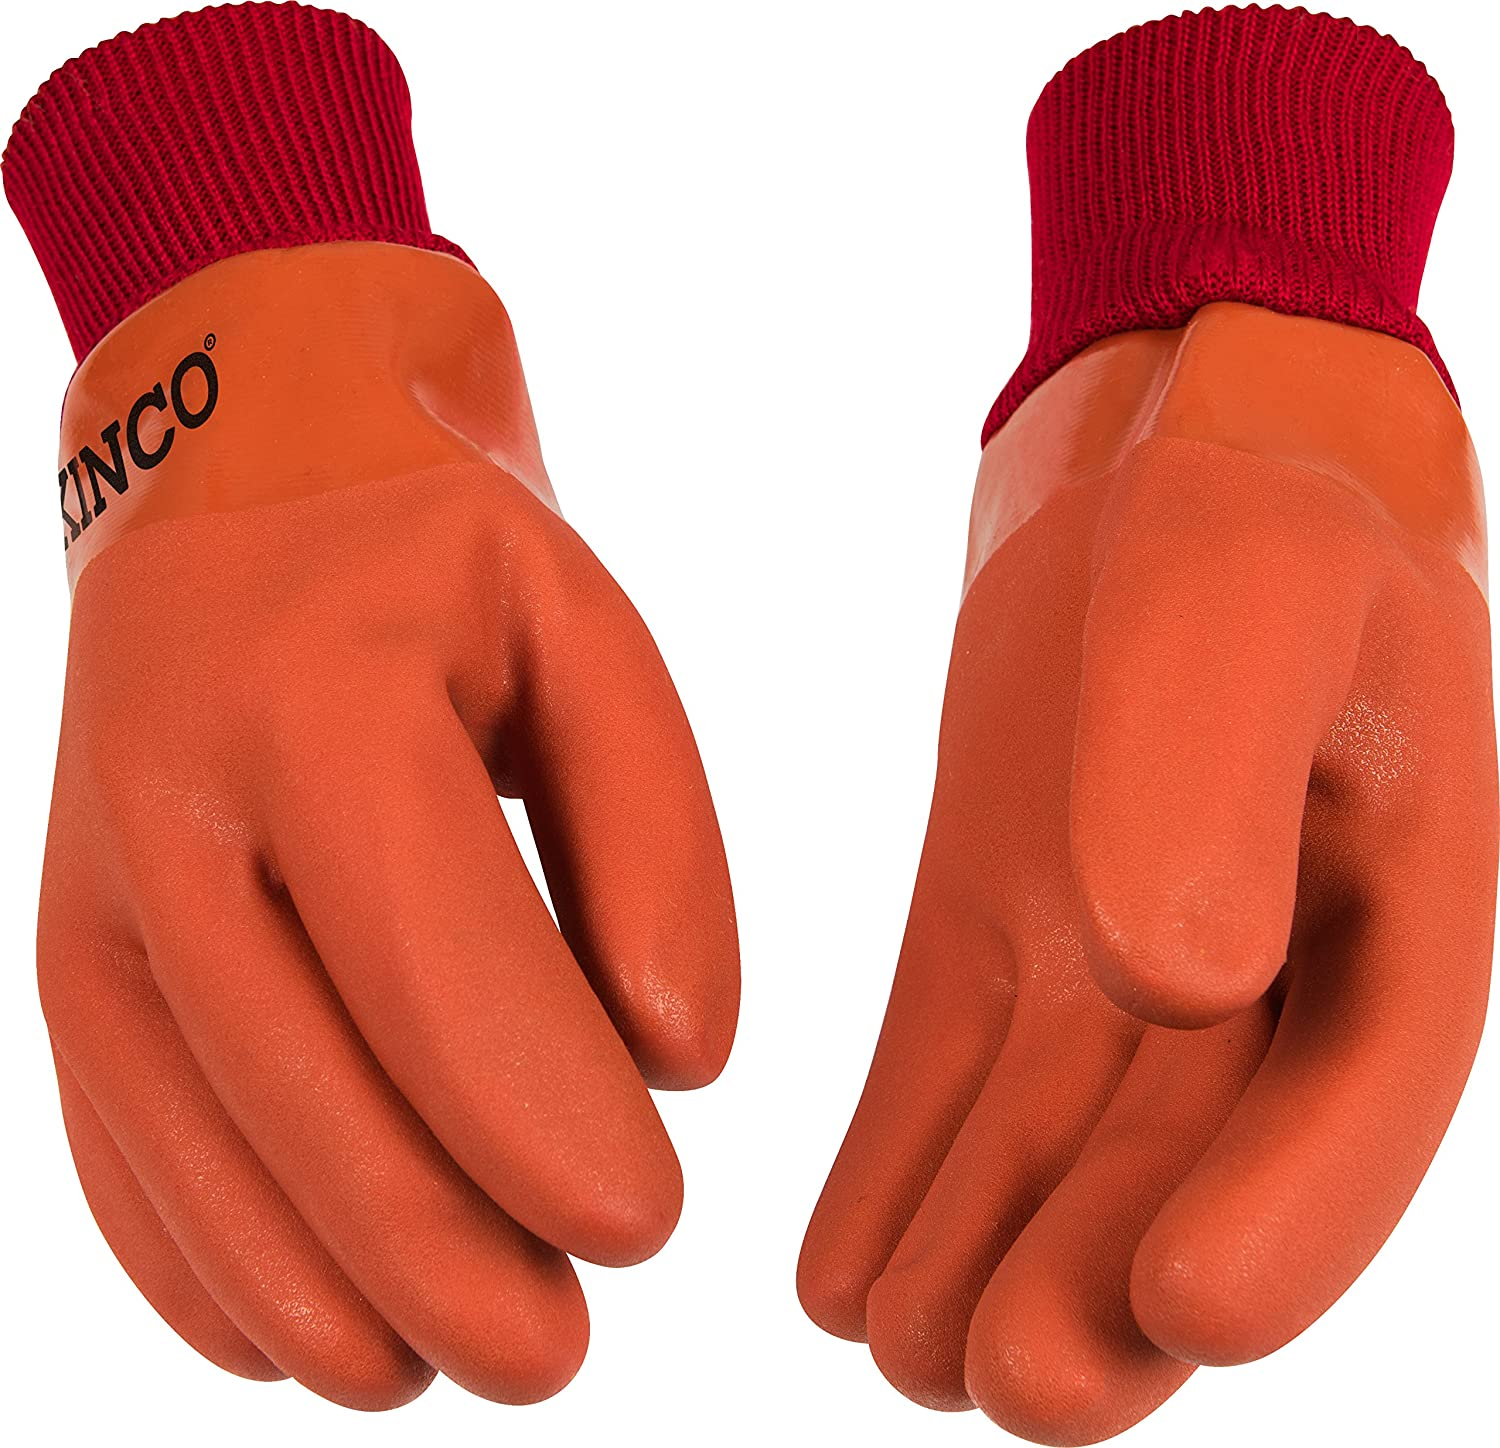 Large KINCO 8170-L Mens Lined PVC Gloves Orange Thermal Acrylic Lining